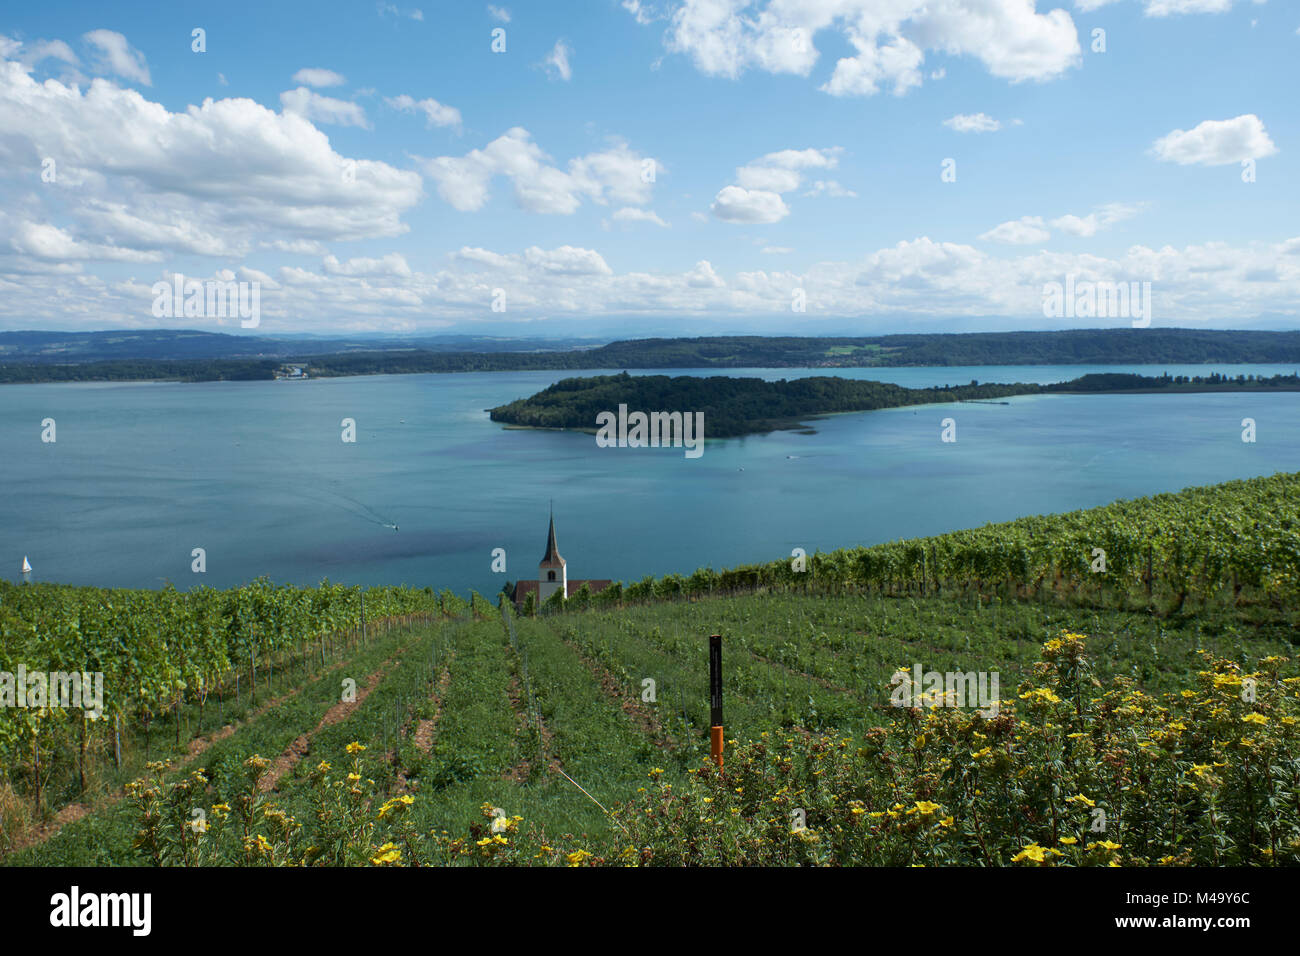 Ligerz, Switzerland, lake of Biel - Stock Image